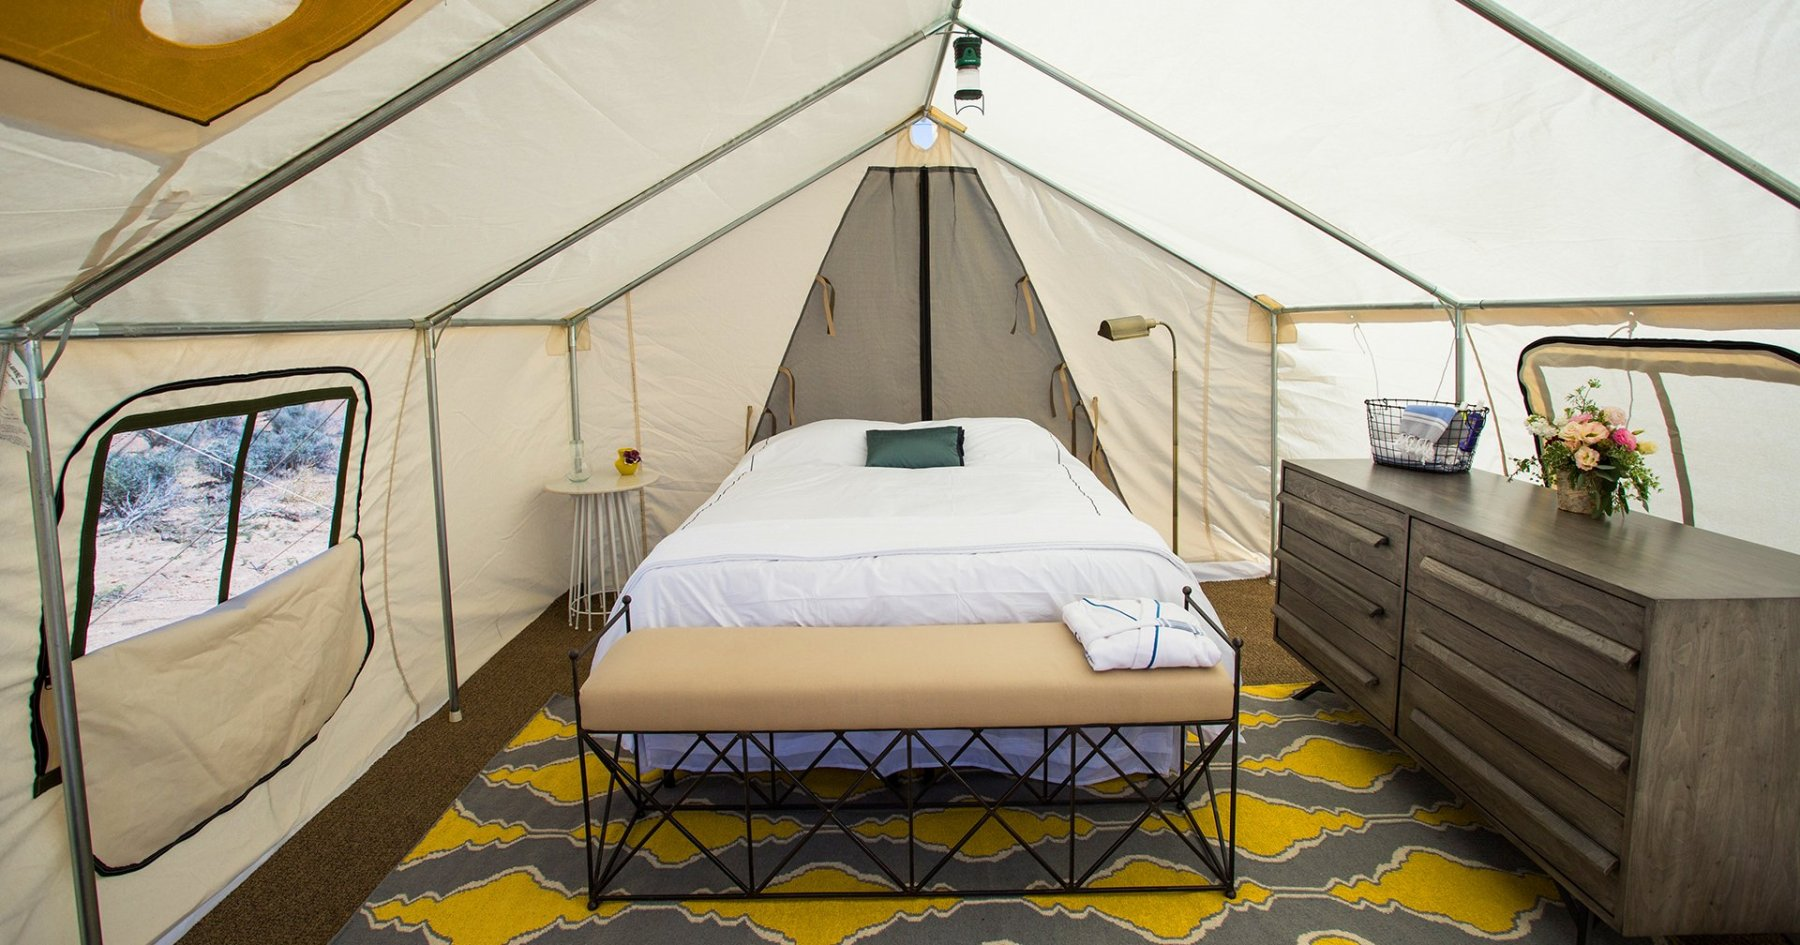 Two New Glamping Concerns Just Popped Up on a Beach in Queens